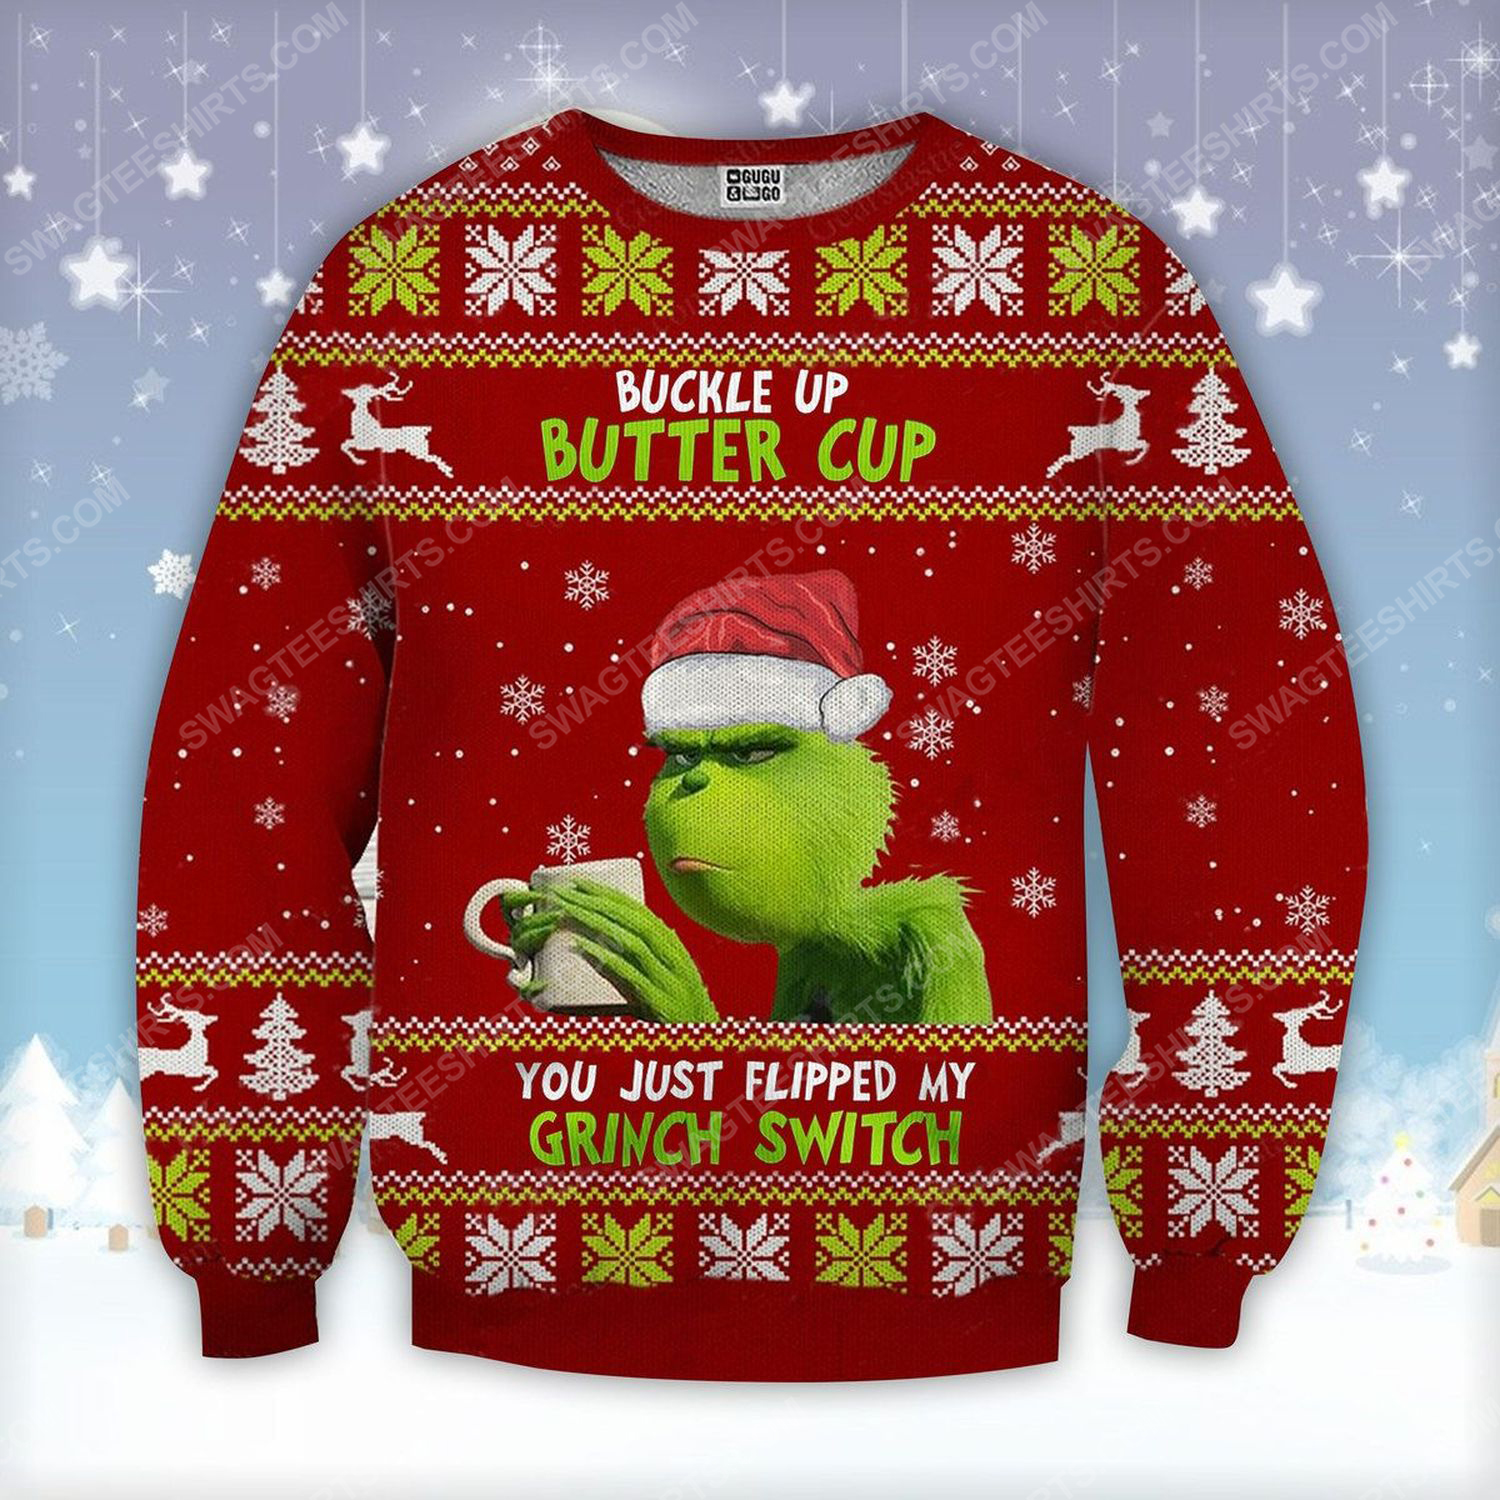 Buckle up buttercup you just flipped my grinch switch ugly christmas sweater